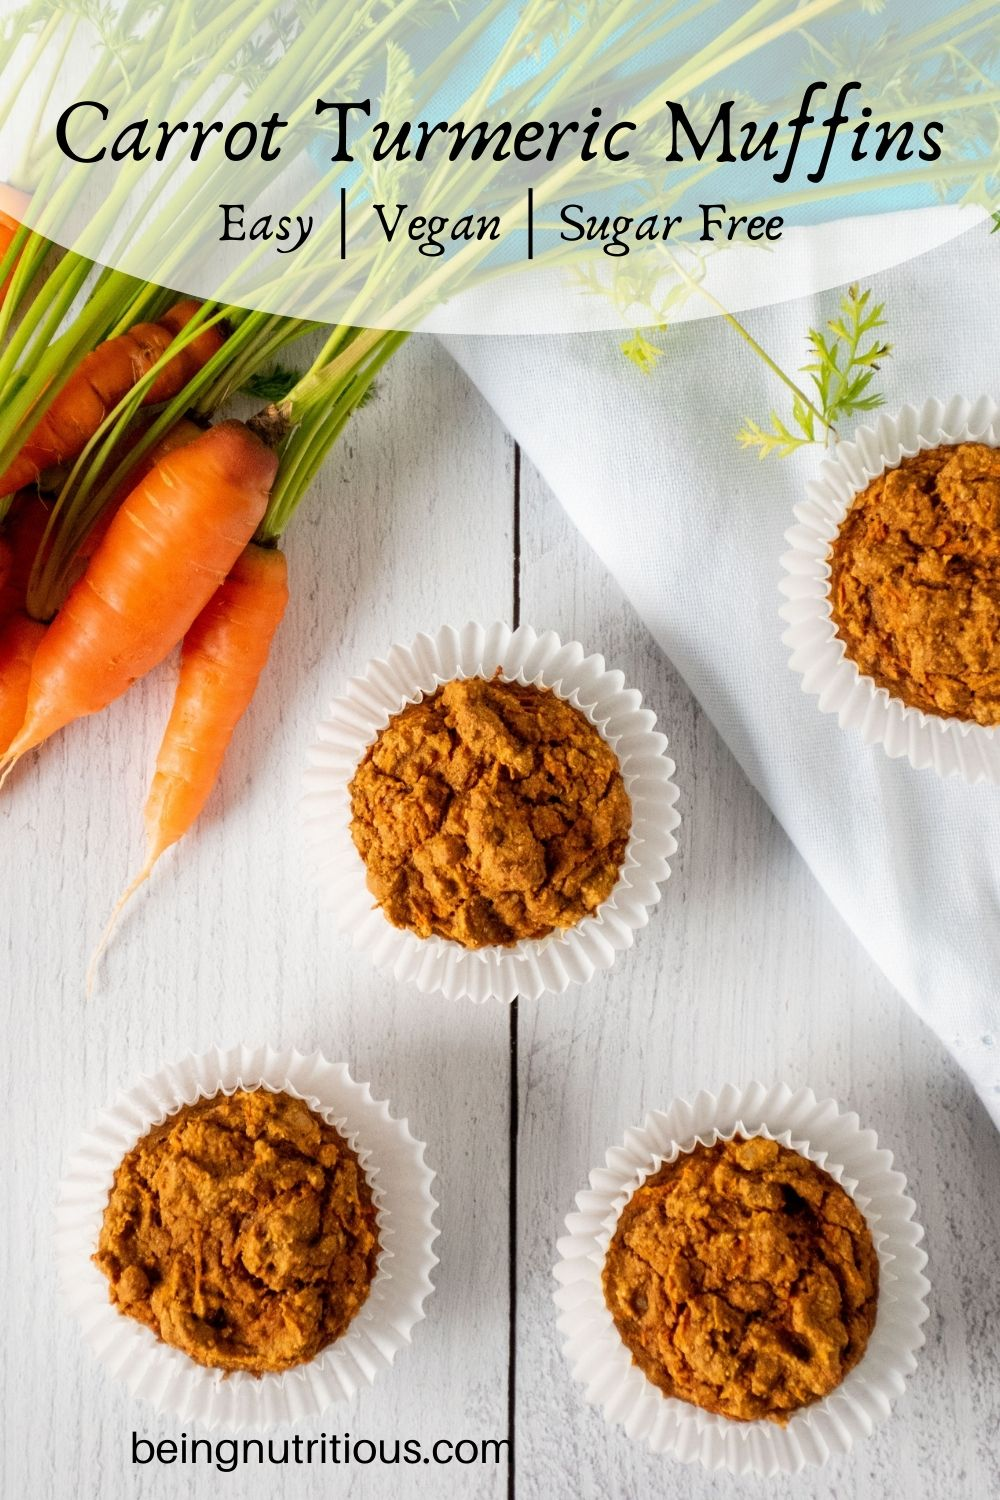 Muffins on a table with fresh carrots. Text overlay: Carrot Turmeric Muffins; easy, whole grain, sugar free.